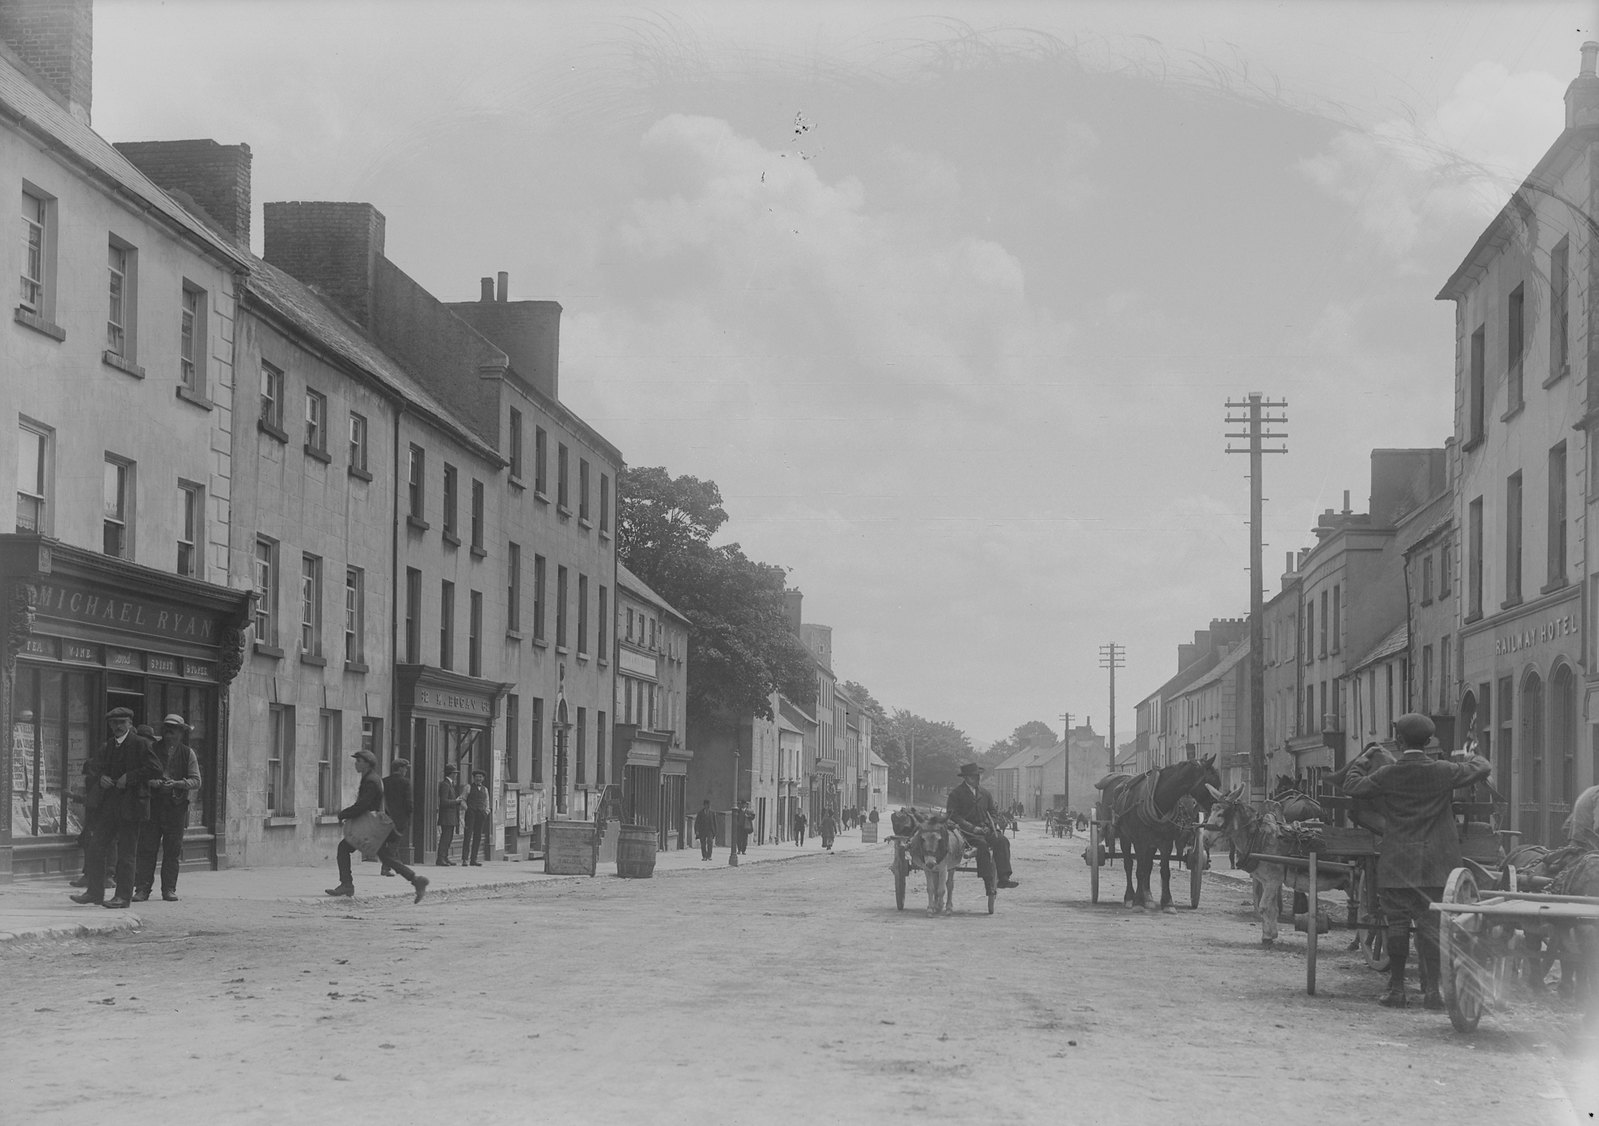 Old photo of Nenagh, Co. Tipperary